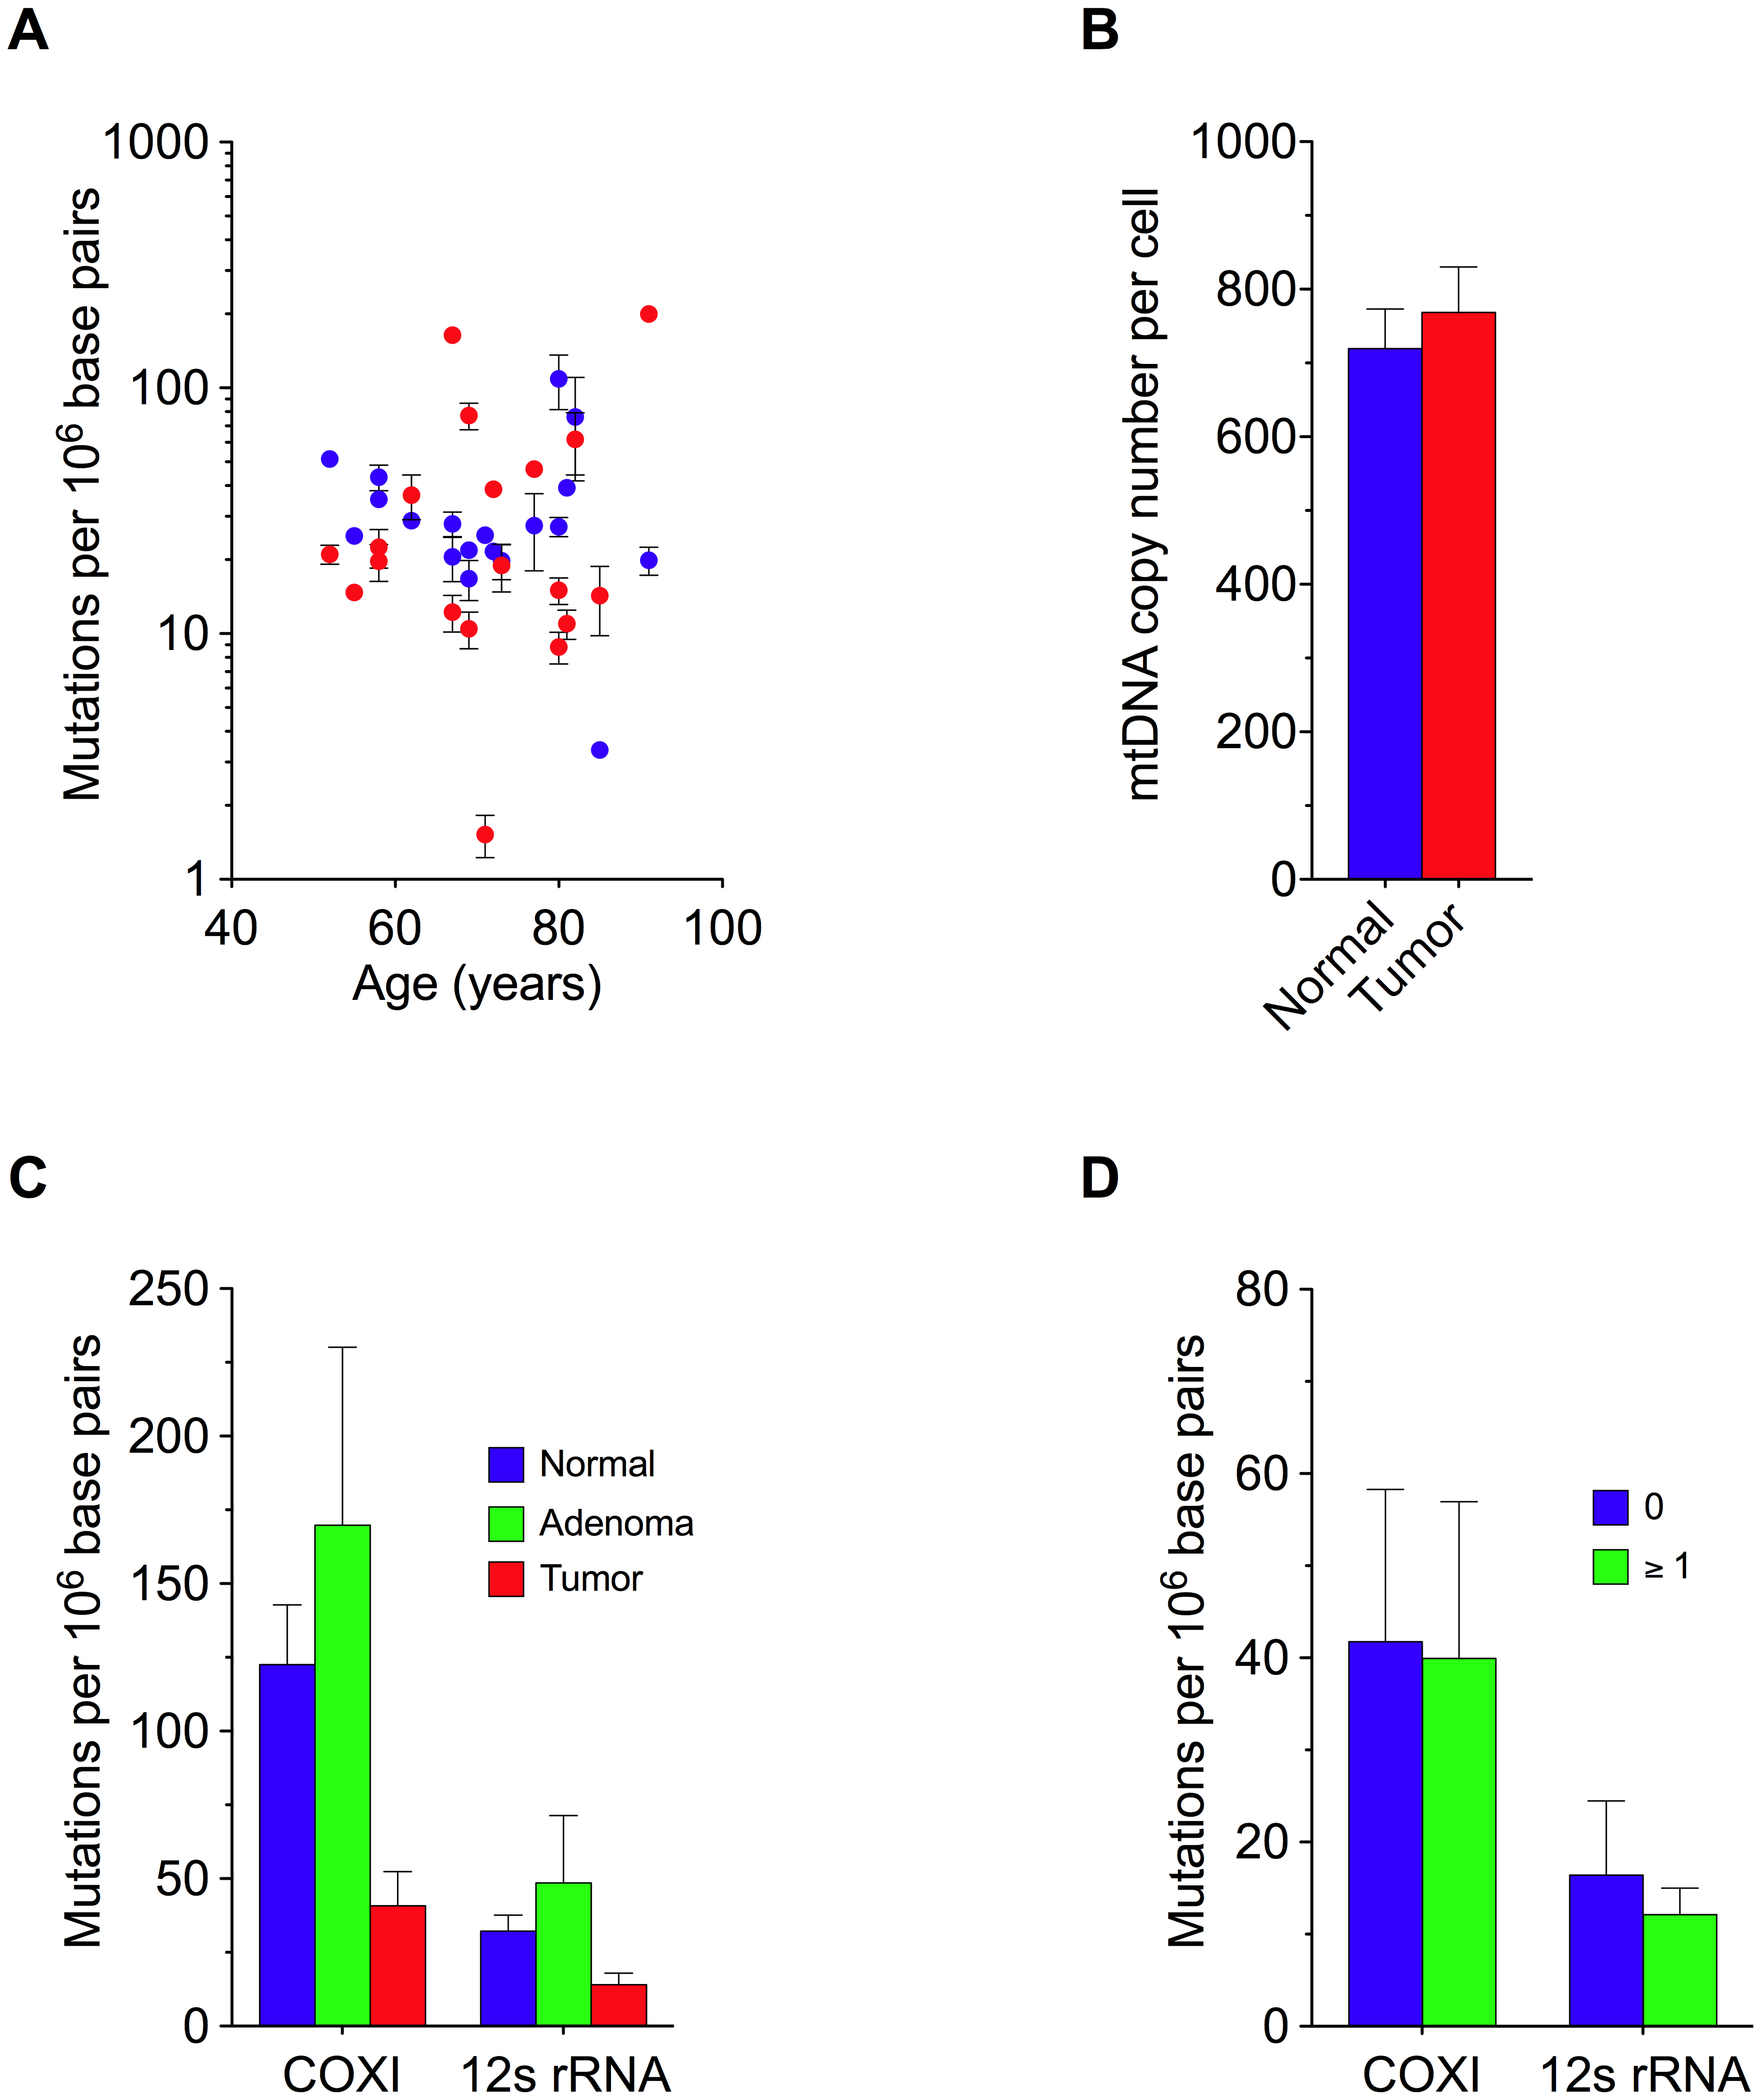 Random Mitochondrial DNA Mutations and Genome Copy Number in Colorectal Tissue.